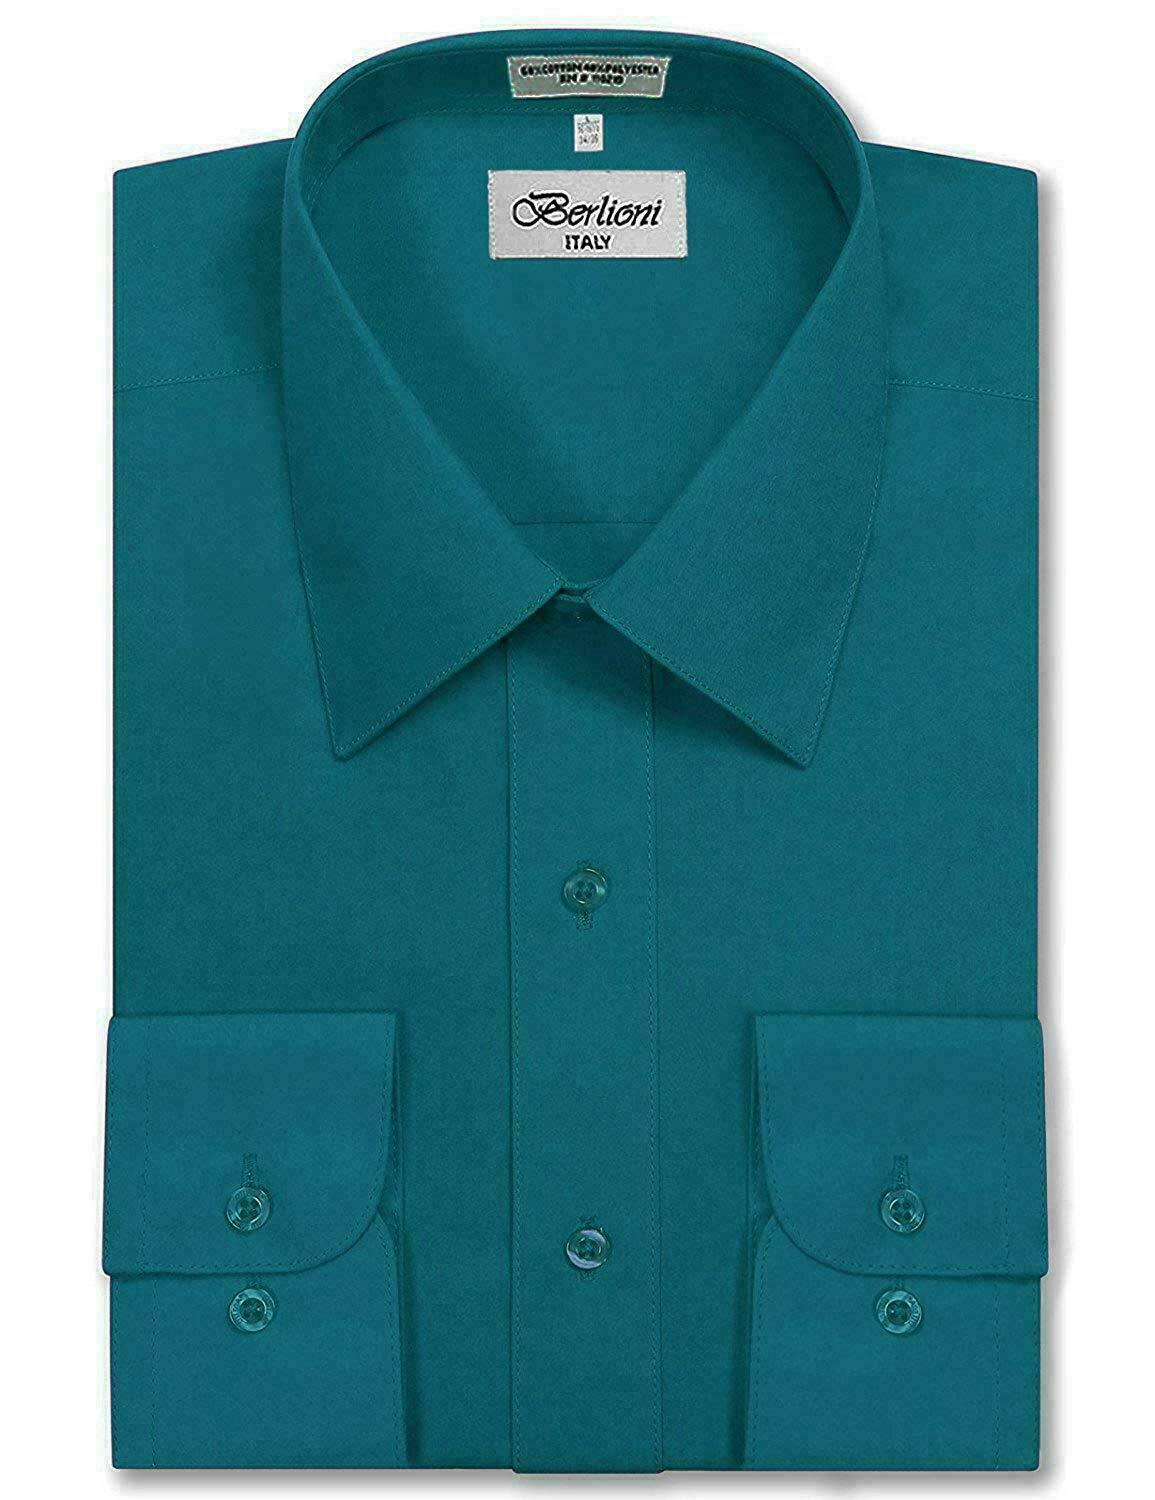 Berlioni Italy Men's Long Sleeve Solid Regular Fit Teal Dress Shirt - 2XL